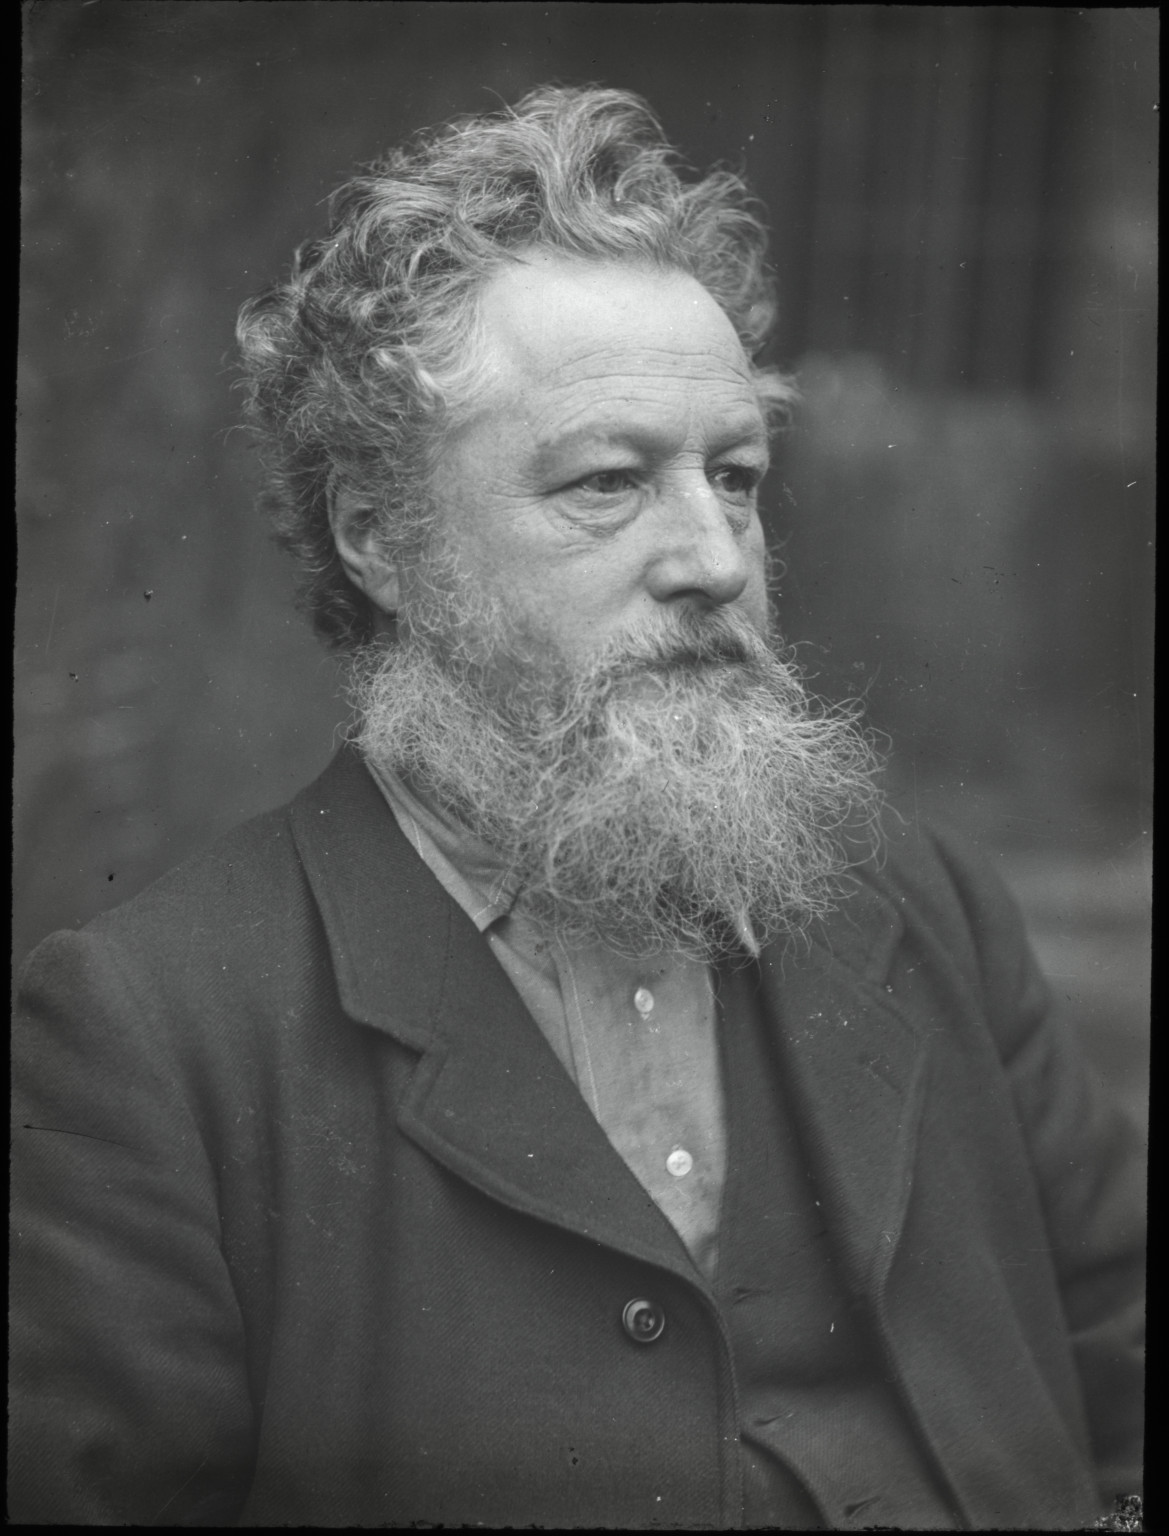 Photograph of William Morris by Emery Walker, 1889